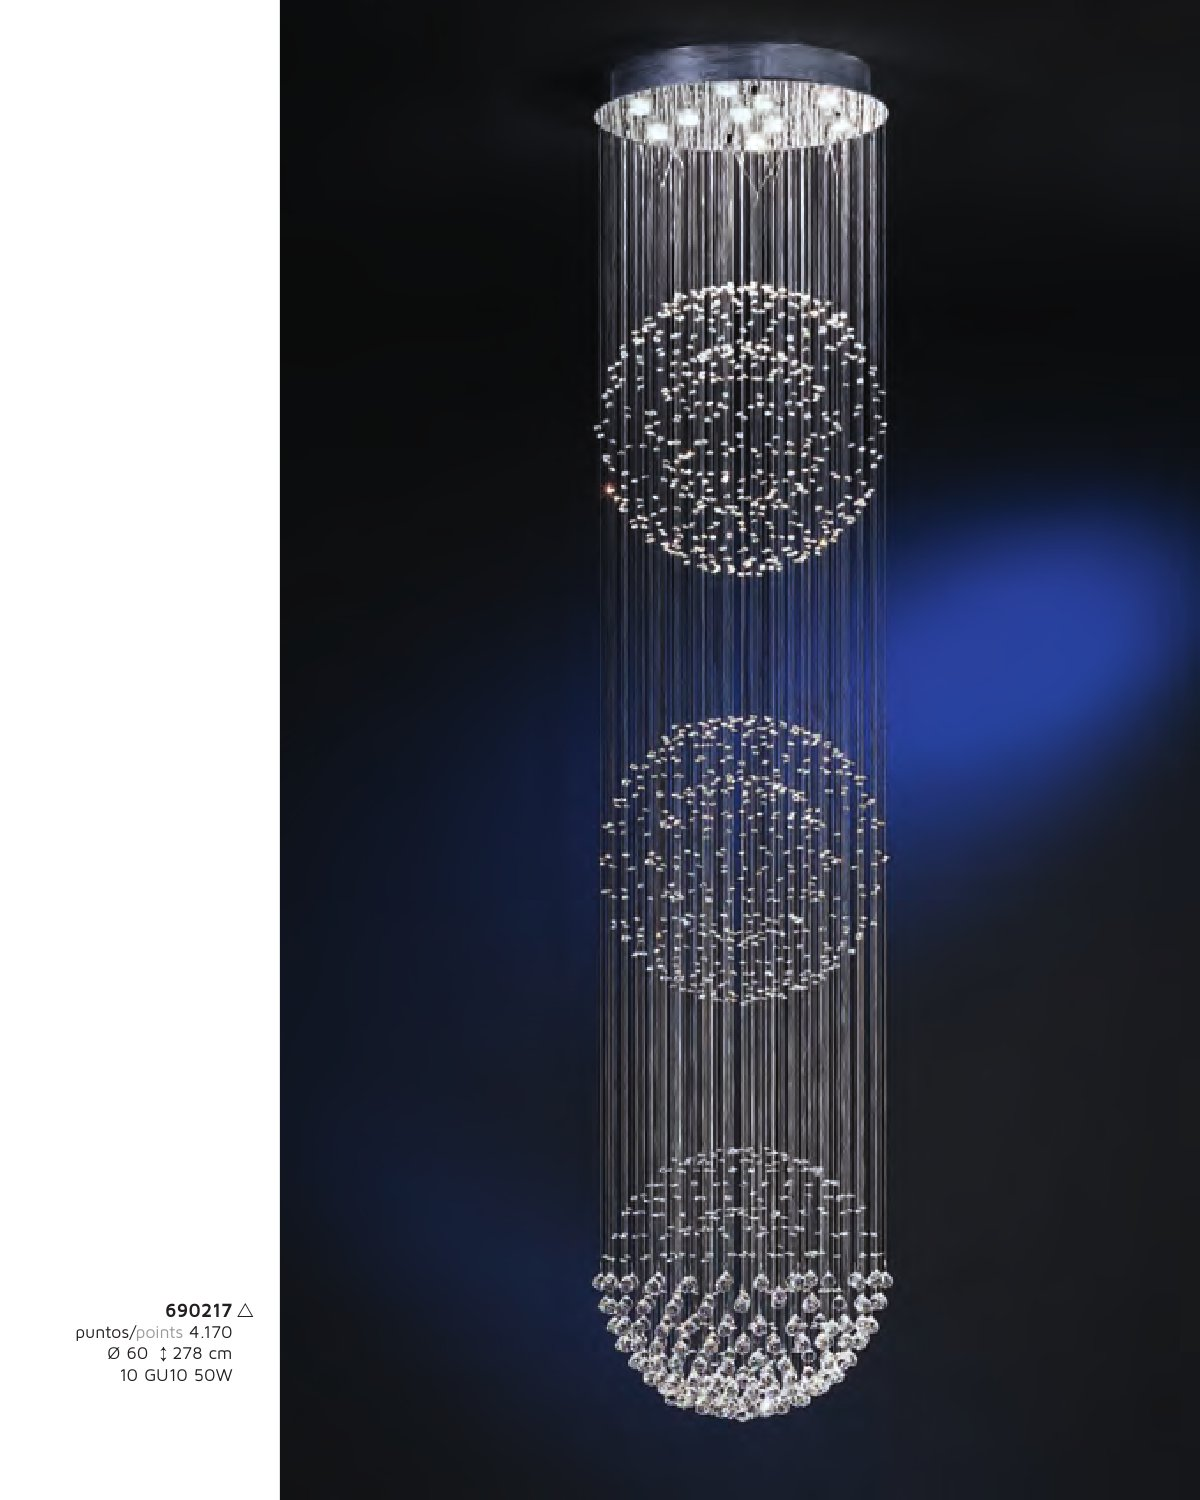 Estratos Suspension 3 Balles 10x GU10 LED 7W chromé brillant/Verre Asfour Schuller Image